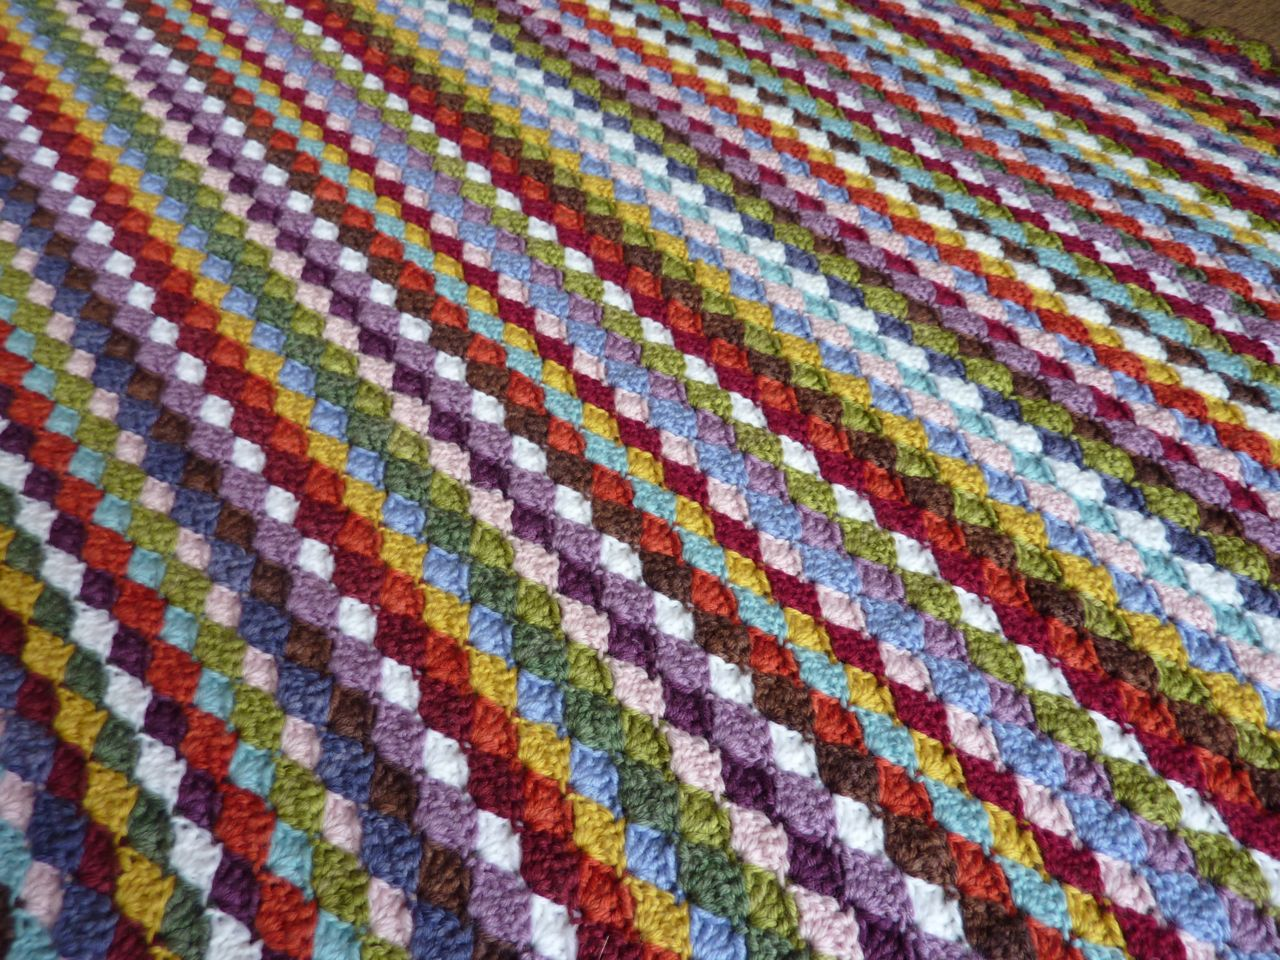 Crochet Patterns Stitches : My Rose Valley: Crochet blanket - Voila!